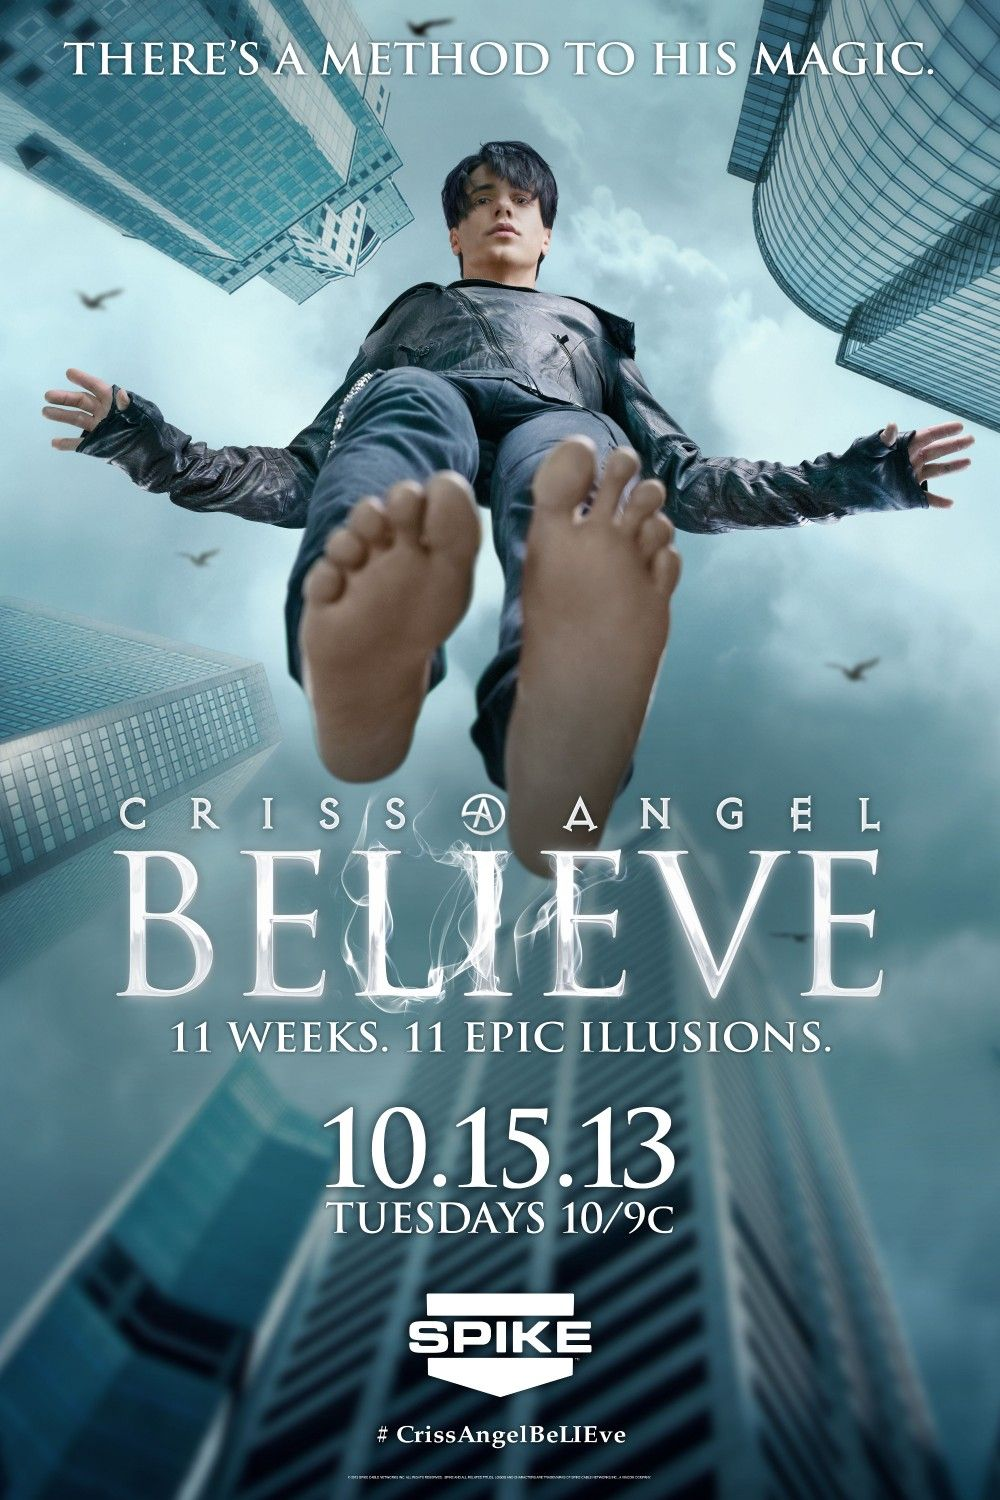 Criss Angel: Believe. I got to see Criss Angel at the Luxor in Vegas and he  was much more personal, heartfelt, and funnier than I ever thought.